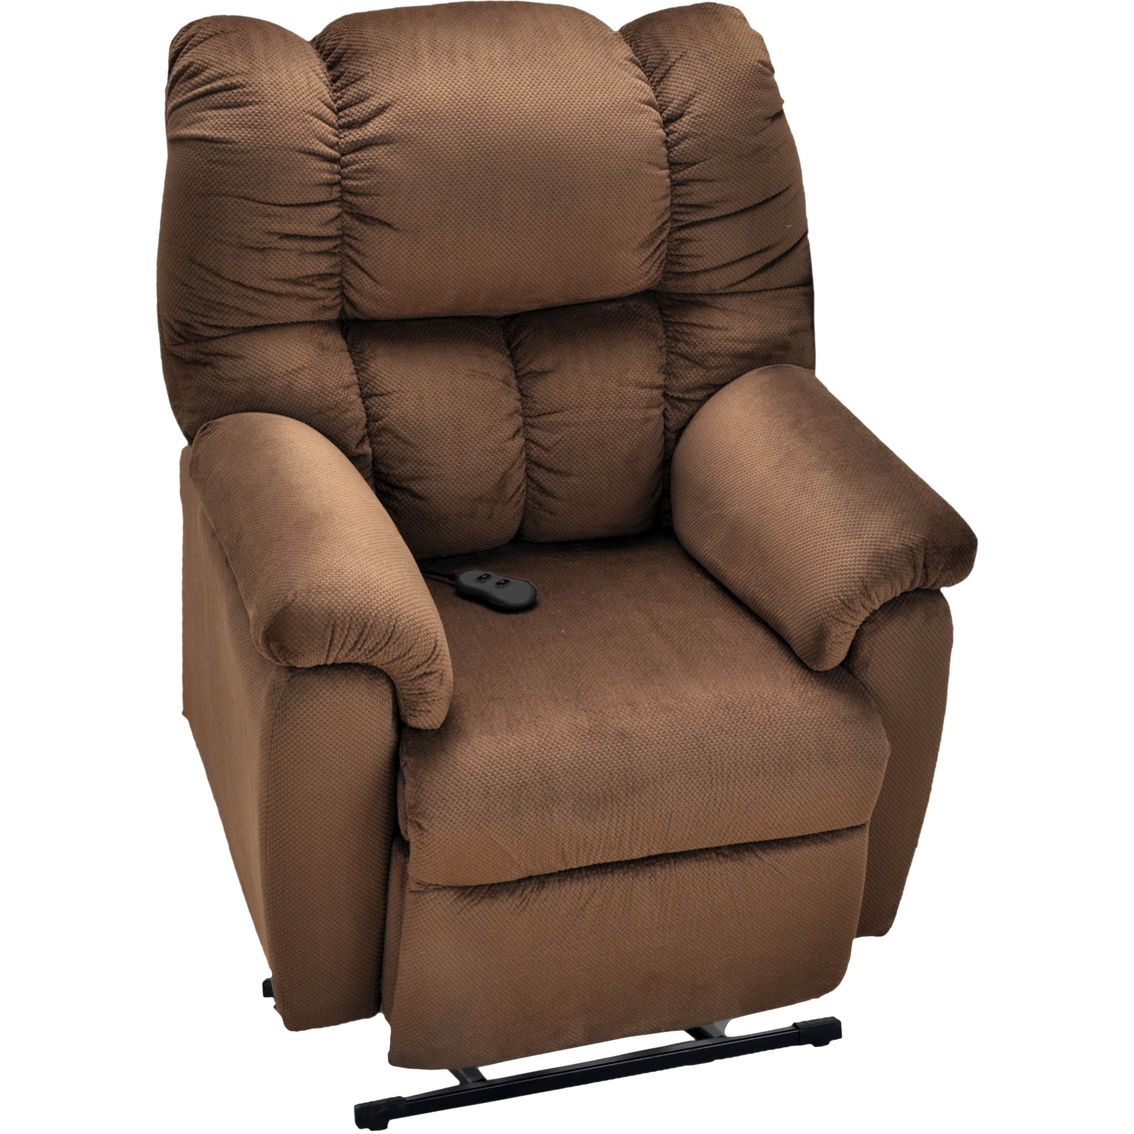 Franklin Trent Lift Recliner  Chairs  Recliners  Home